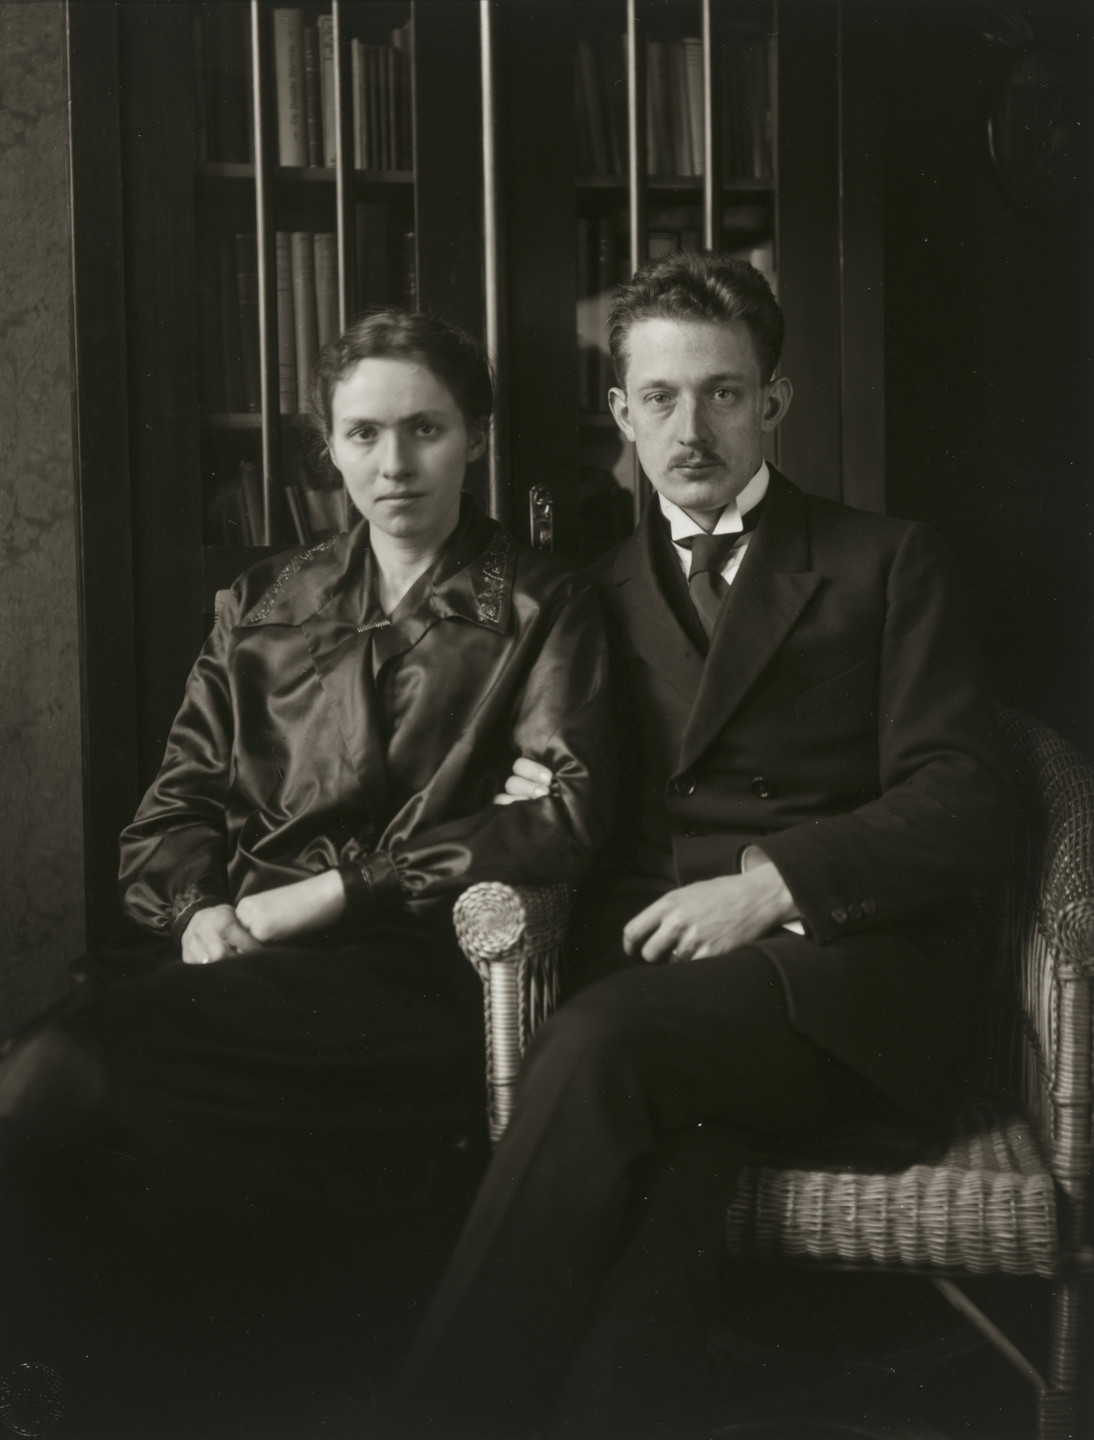 August Sander. Clergyman and Wife. c. 1929